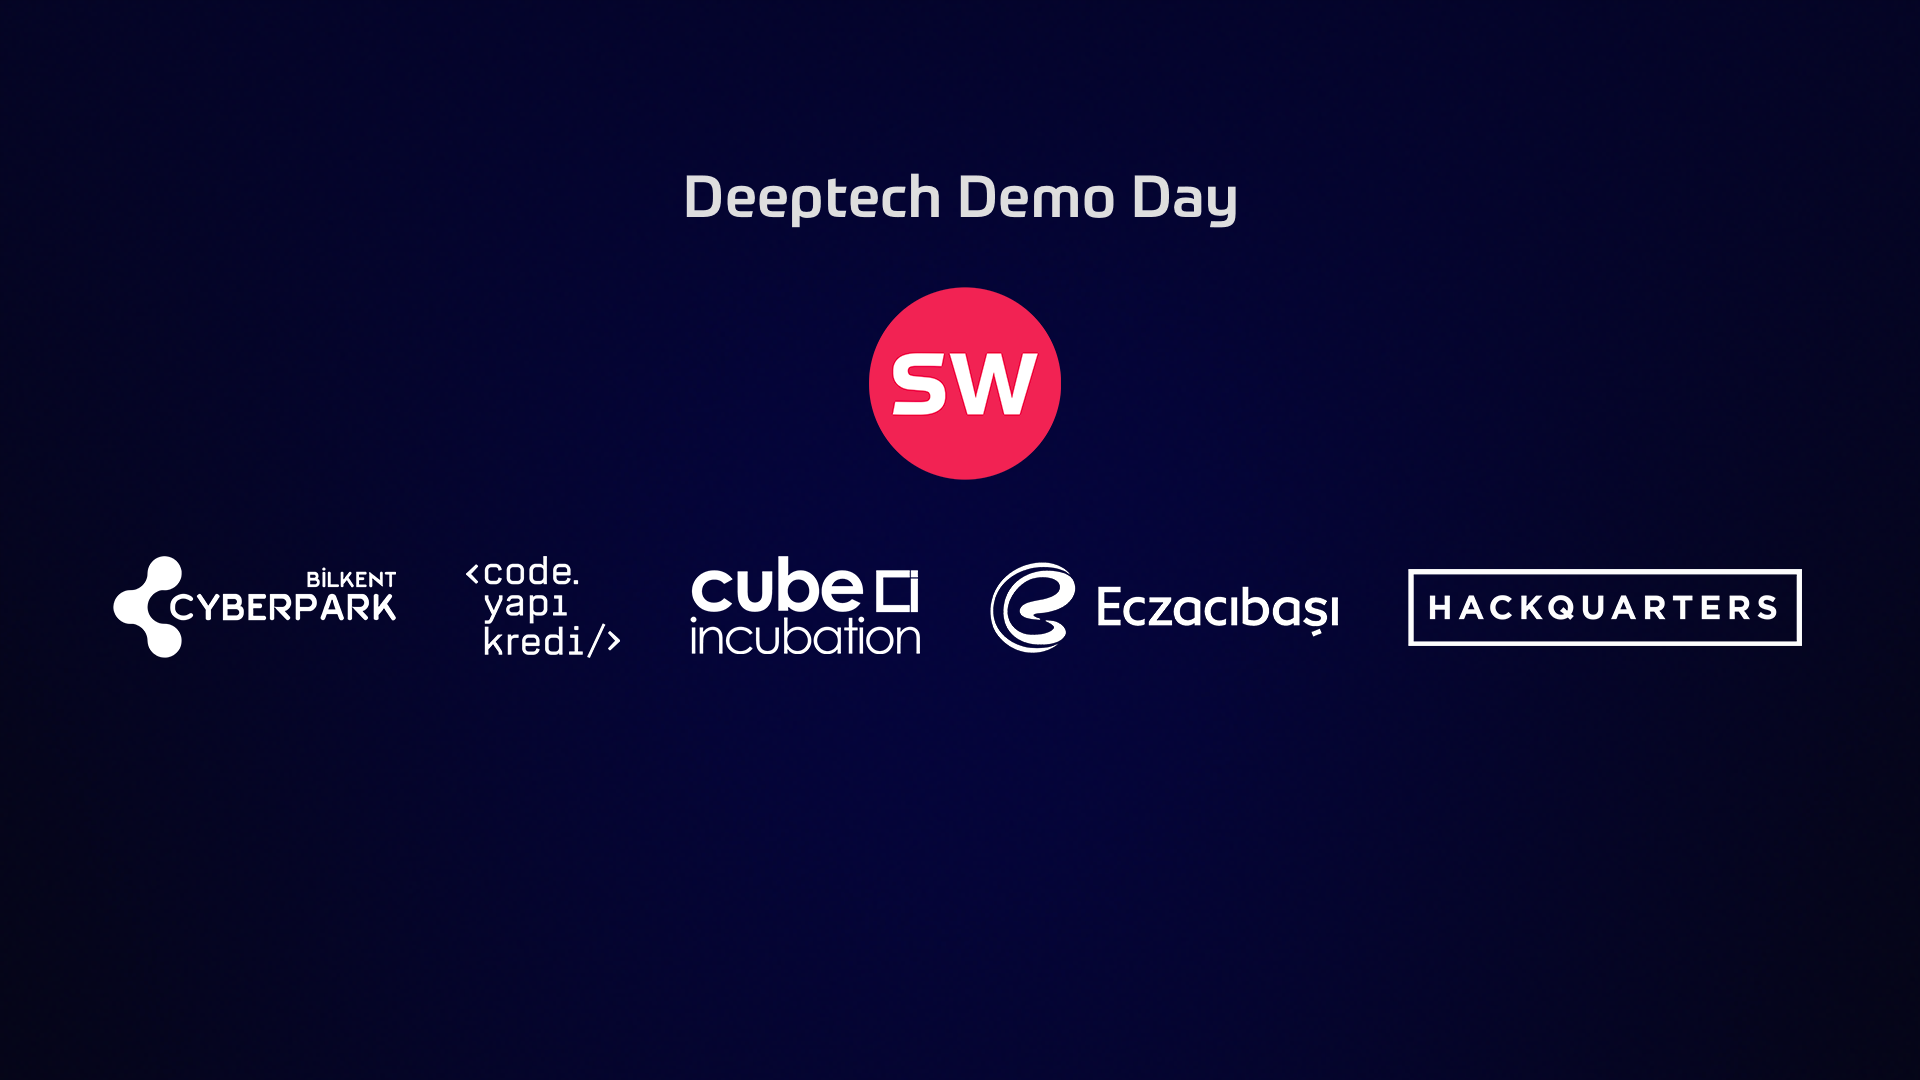 As we head into the last 4 Demo Days of 2021, StartupsWatch hosted their Online Demo Day for Deep Tech startups on 29 September.